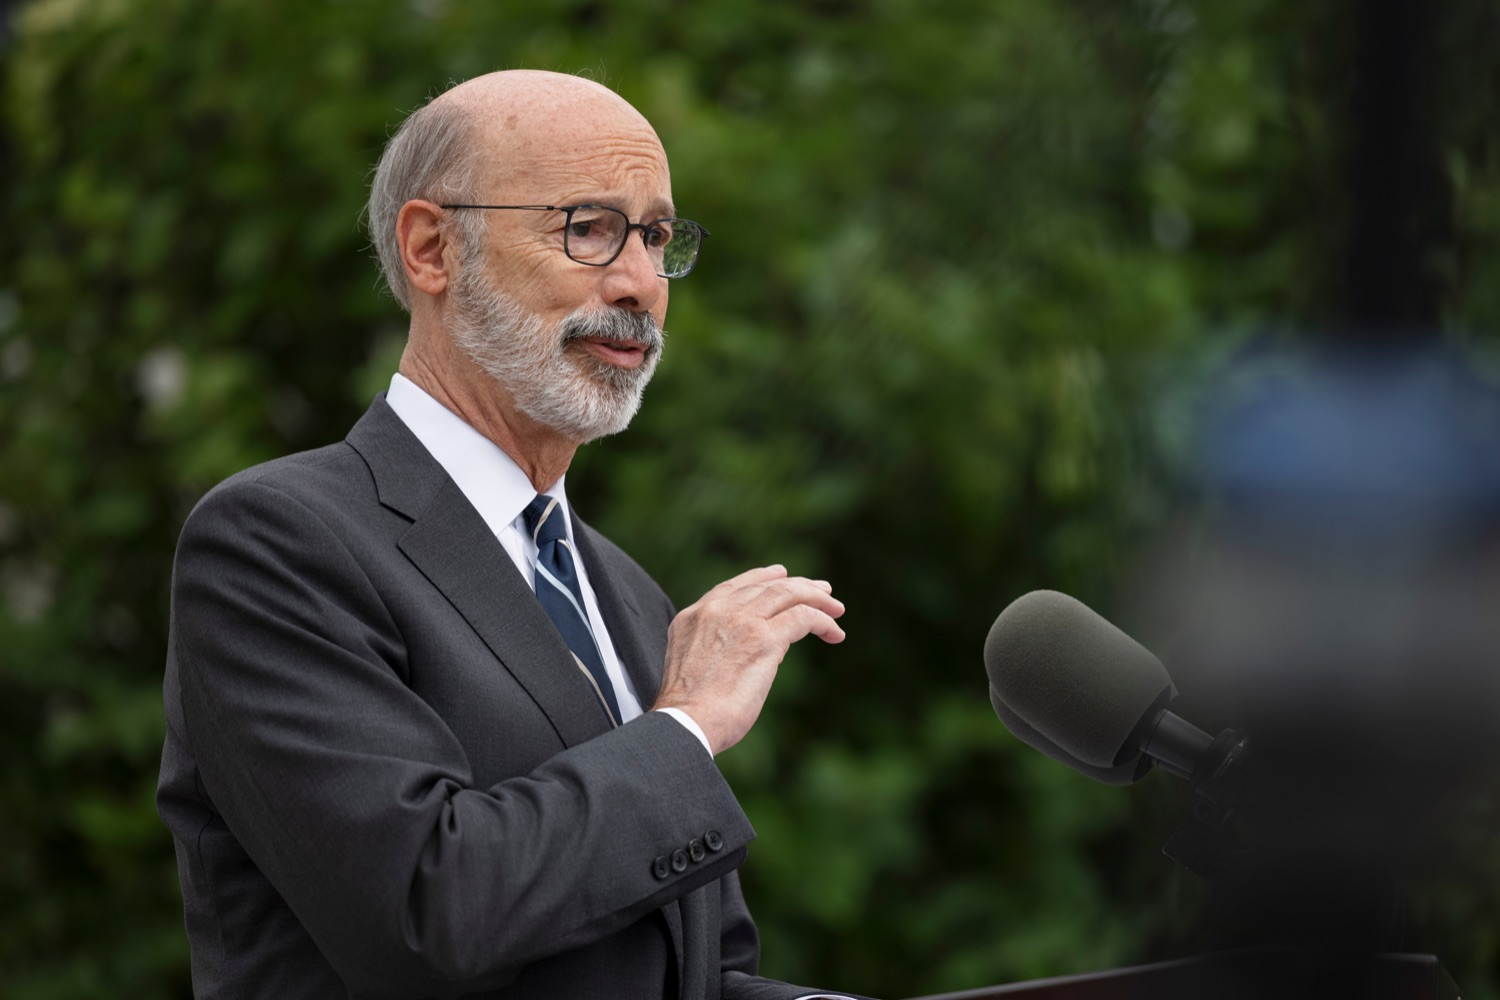 """<a href=""""https://filesource.wostreaming.net/commonwealthofpa/photo/20119_GOV_Vaccines_NK_002.jpg"""" target=""""_blank"""">⇣Download Photo<br></a>PA Governor Tom Wolf speaks during a press conference, which encouraged eligible Pennsylvanians who are not yet vaccinated to take advantage of their upcoming community COVID-19 vaccine clinic in partnership with the Zeta Theta Lambda Chapter of Alpha Phi Alpha fraternity, outside Hamilton Health Center in Harrisburg on Wednesday, October 6, 2021. The clinic will run on Saturday, October 9, COVID-19 vaccinations will be offered from 10am  2pm at Hamilton Health Center, 100 S. 17th St., Harrisburg, PA 17104."""